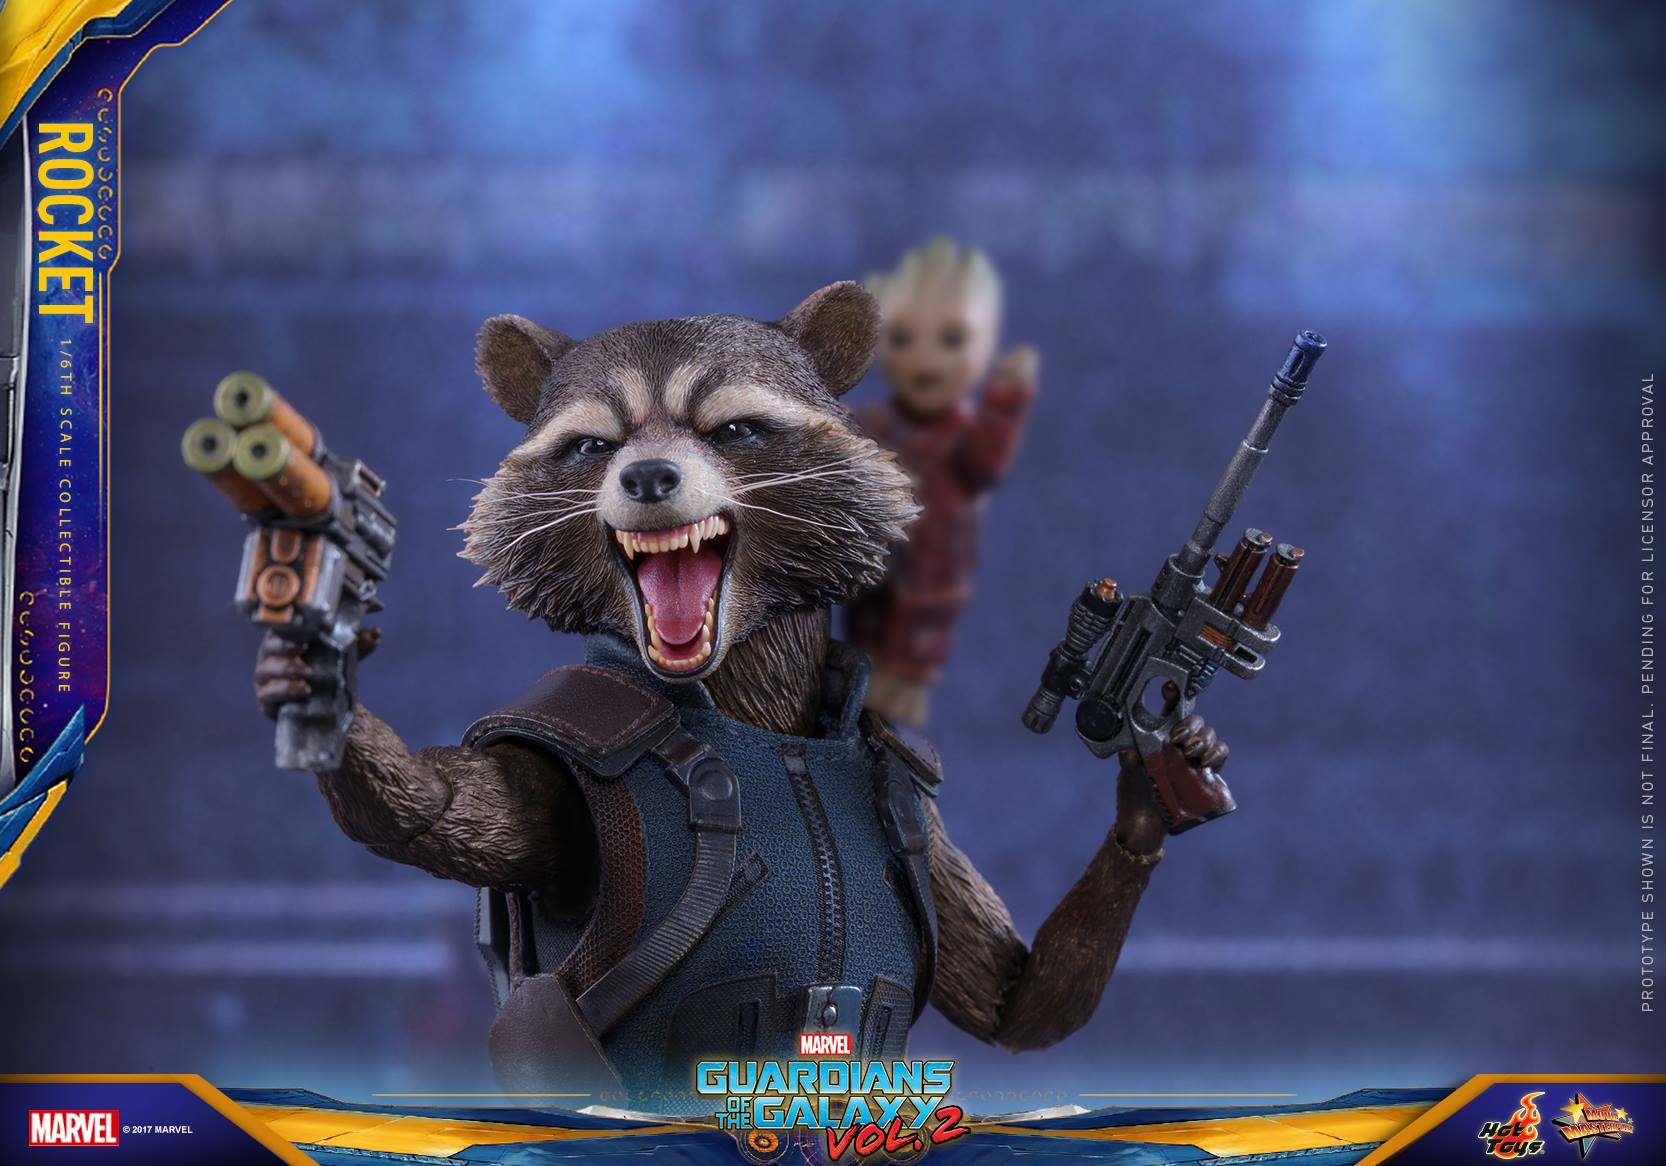 GOTG Vol. 2 – 1/6th Scale Rocket Collectible Figure Coming Soon